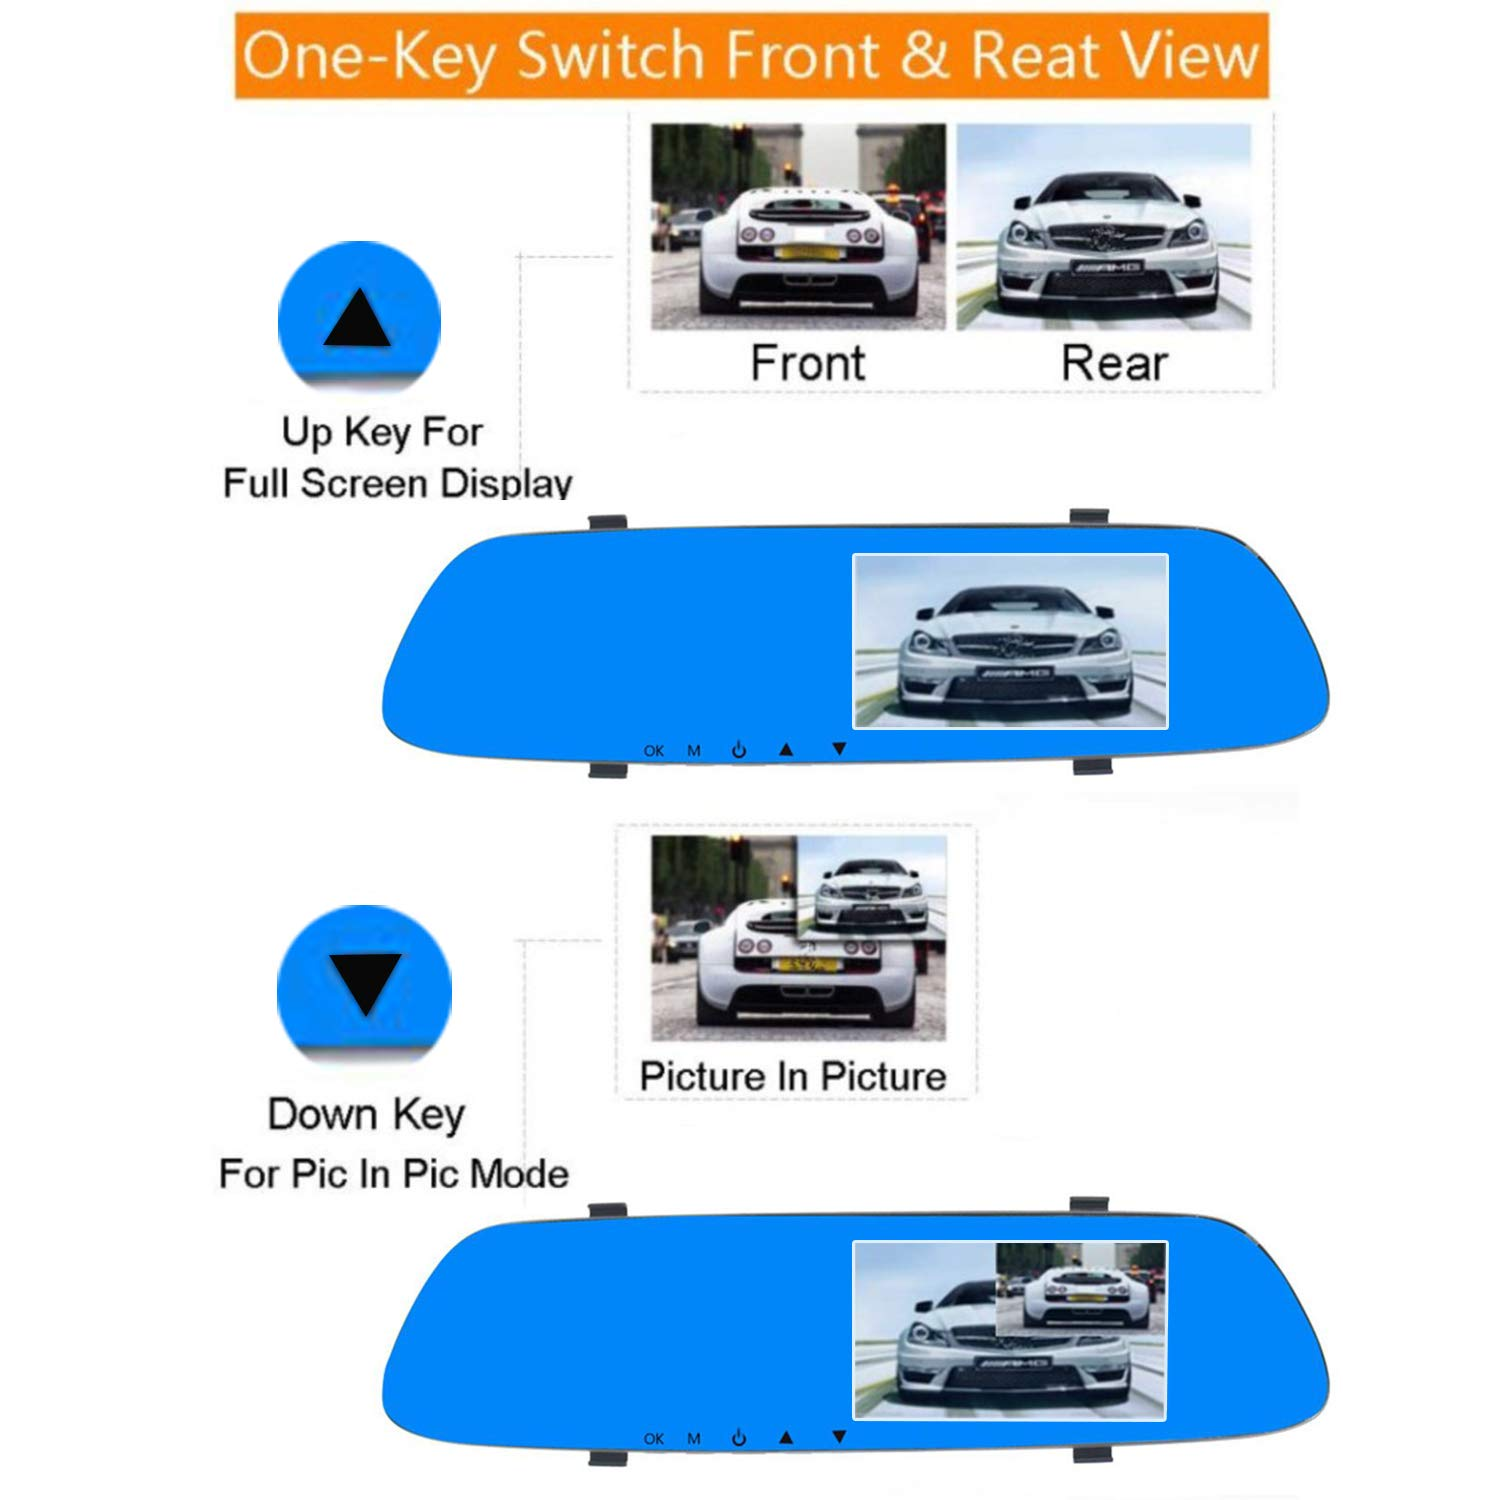 Eagle Eye Right Hand Drive Cars Mirror Dash Cam Reverse Camera Sensor Monitor Parking Assist 1080 FHD Front and Rear View Driving Camera Video Recorder for UK G-Sensor Loop Recording